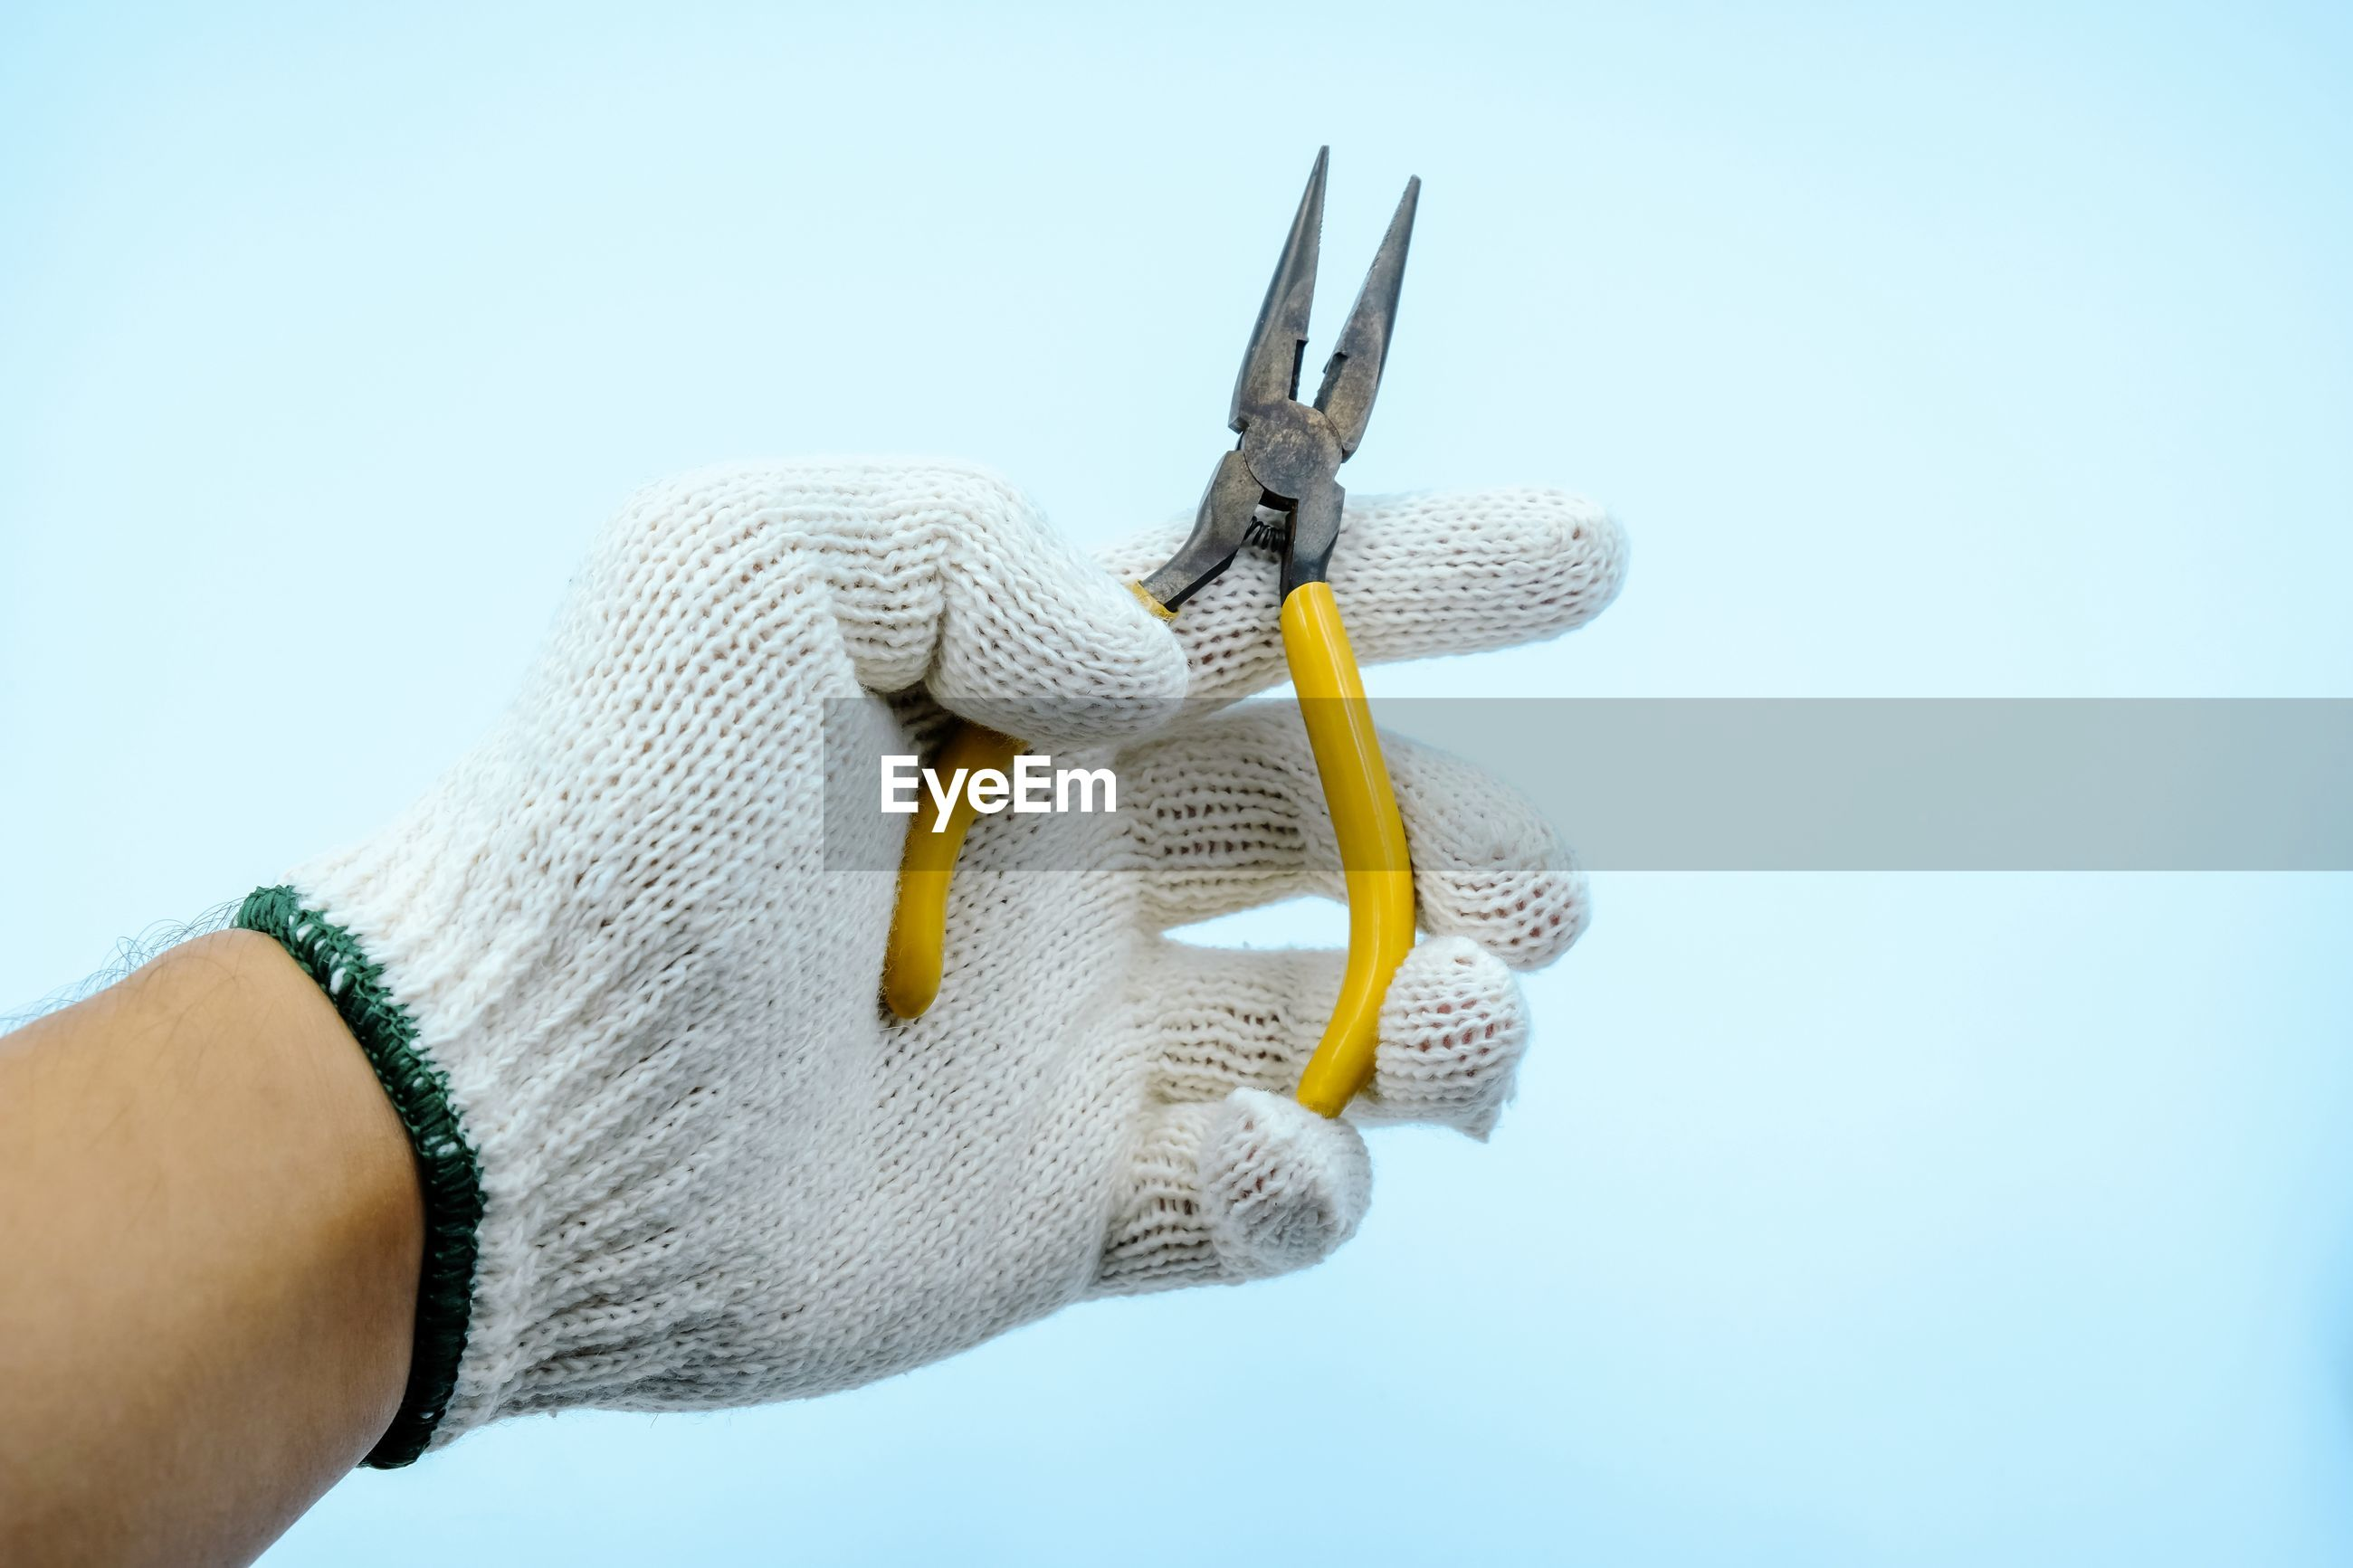 Close-up of hand holding pliers against white background